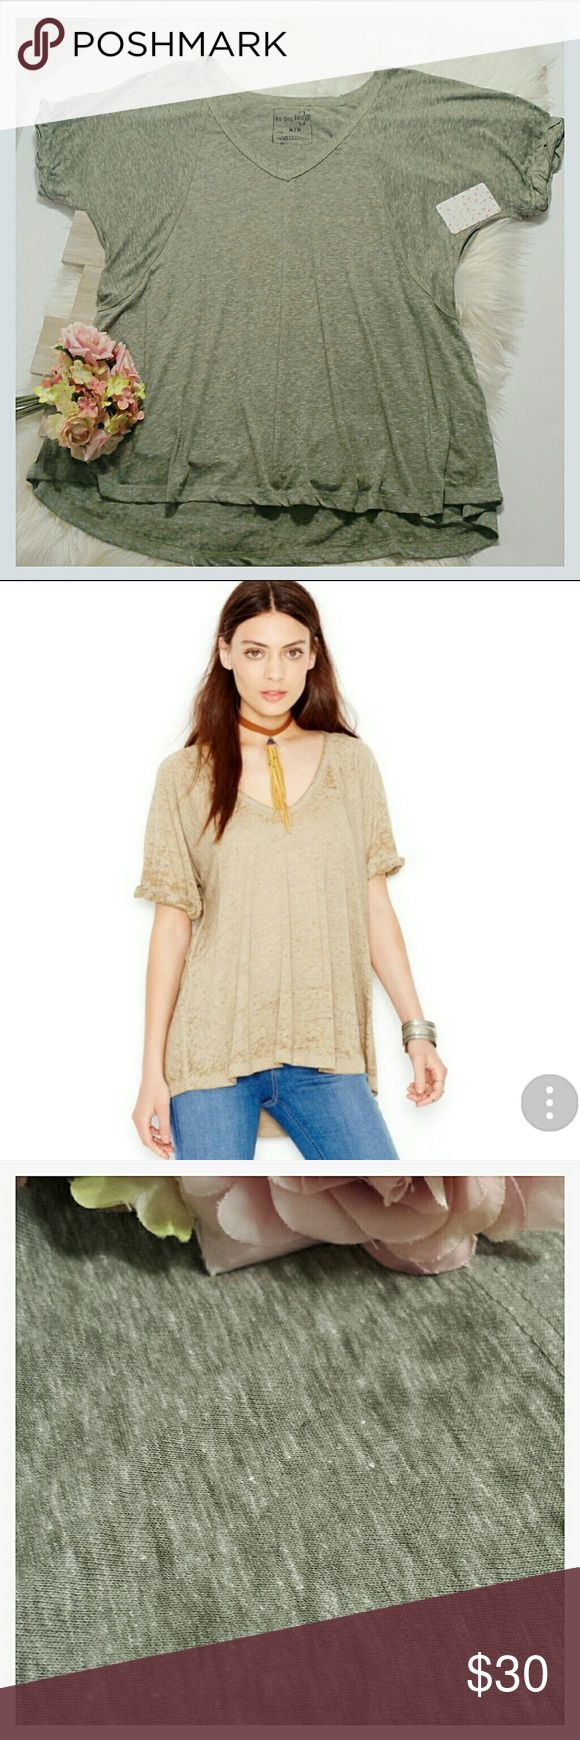 "Free People ""Fatigue"" V-neck Burnout tee Free People NWT ""Fatigue"" green spruce burnout t-shirt size medium.  Oversized, soft, and lightweight.  Sleeves are rolled and tucked. Length (front) 26"" (back) 30"". Chest: 42"". Sleeves: 12"".  (#D999) Free People Tops Tees - Short Sleeve"